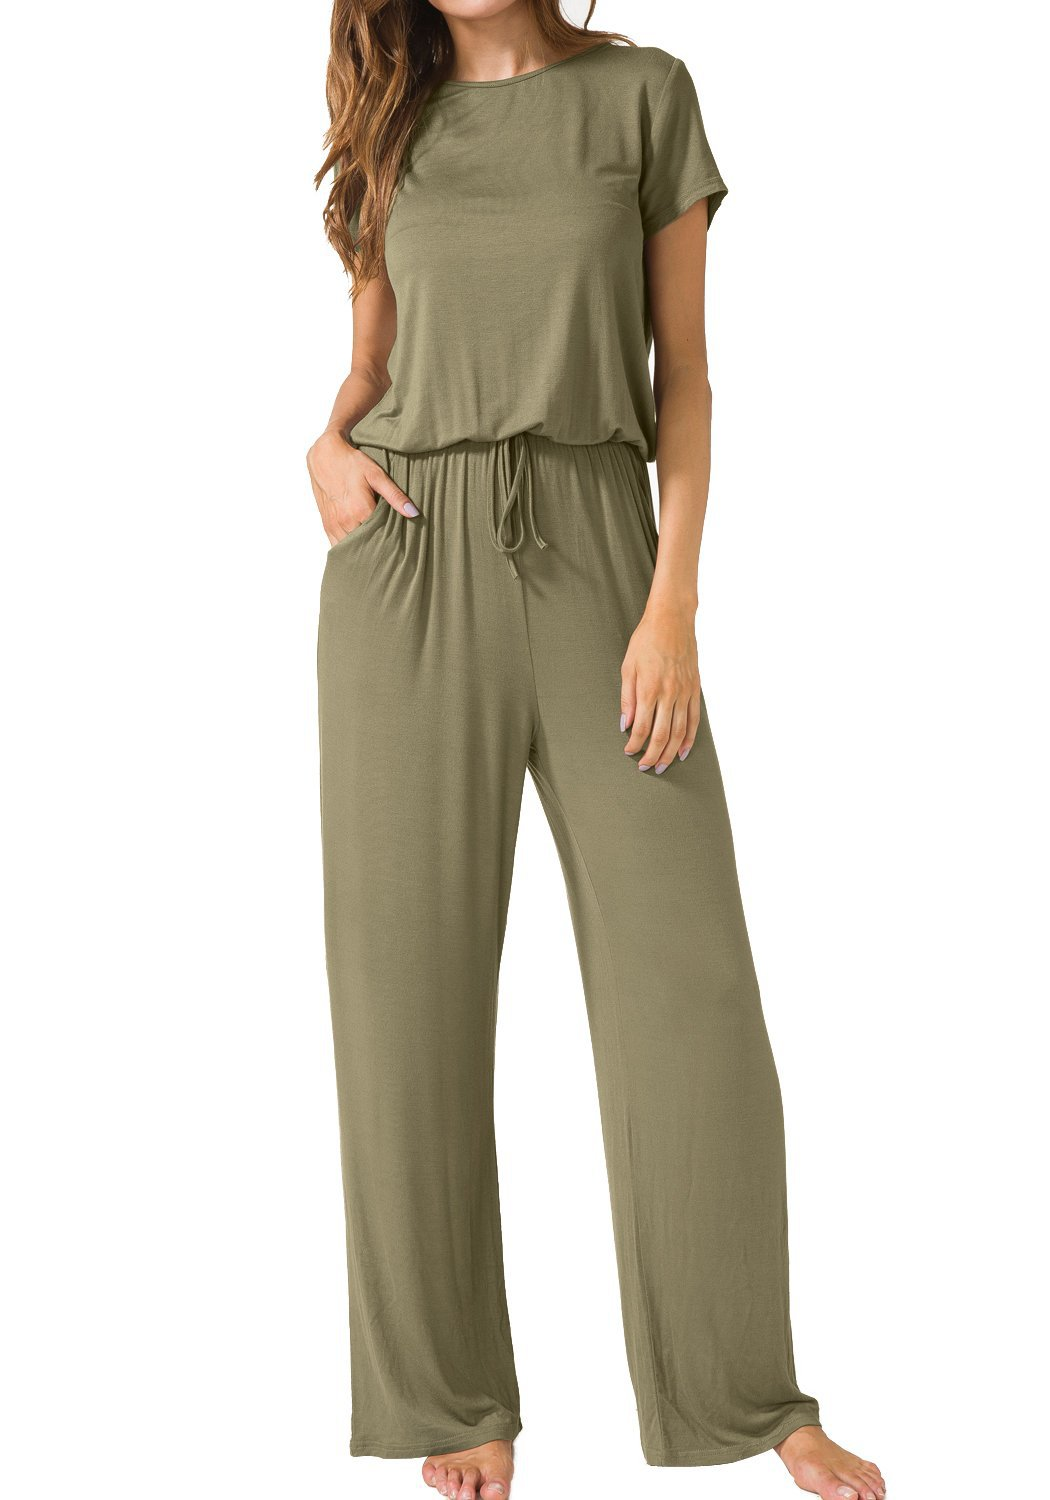 Wontive hot sale Women's Short Sleeve Loose Wide Legs Casual   Jumpsuits   with Pockets